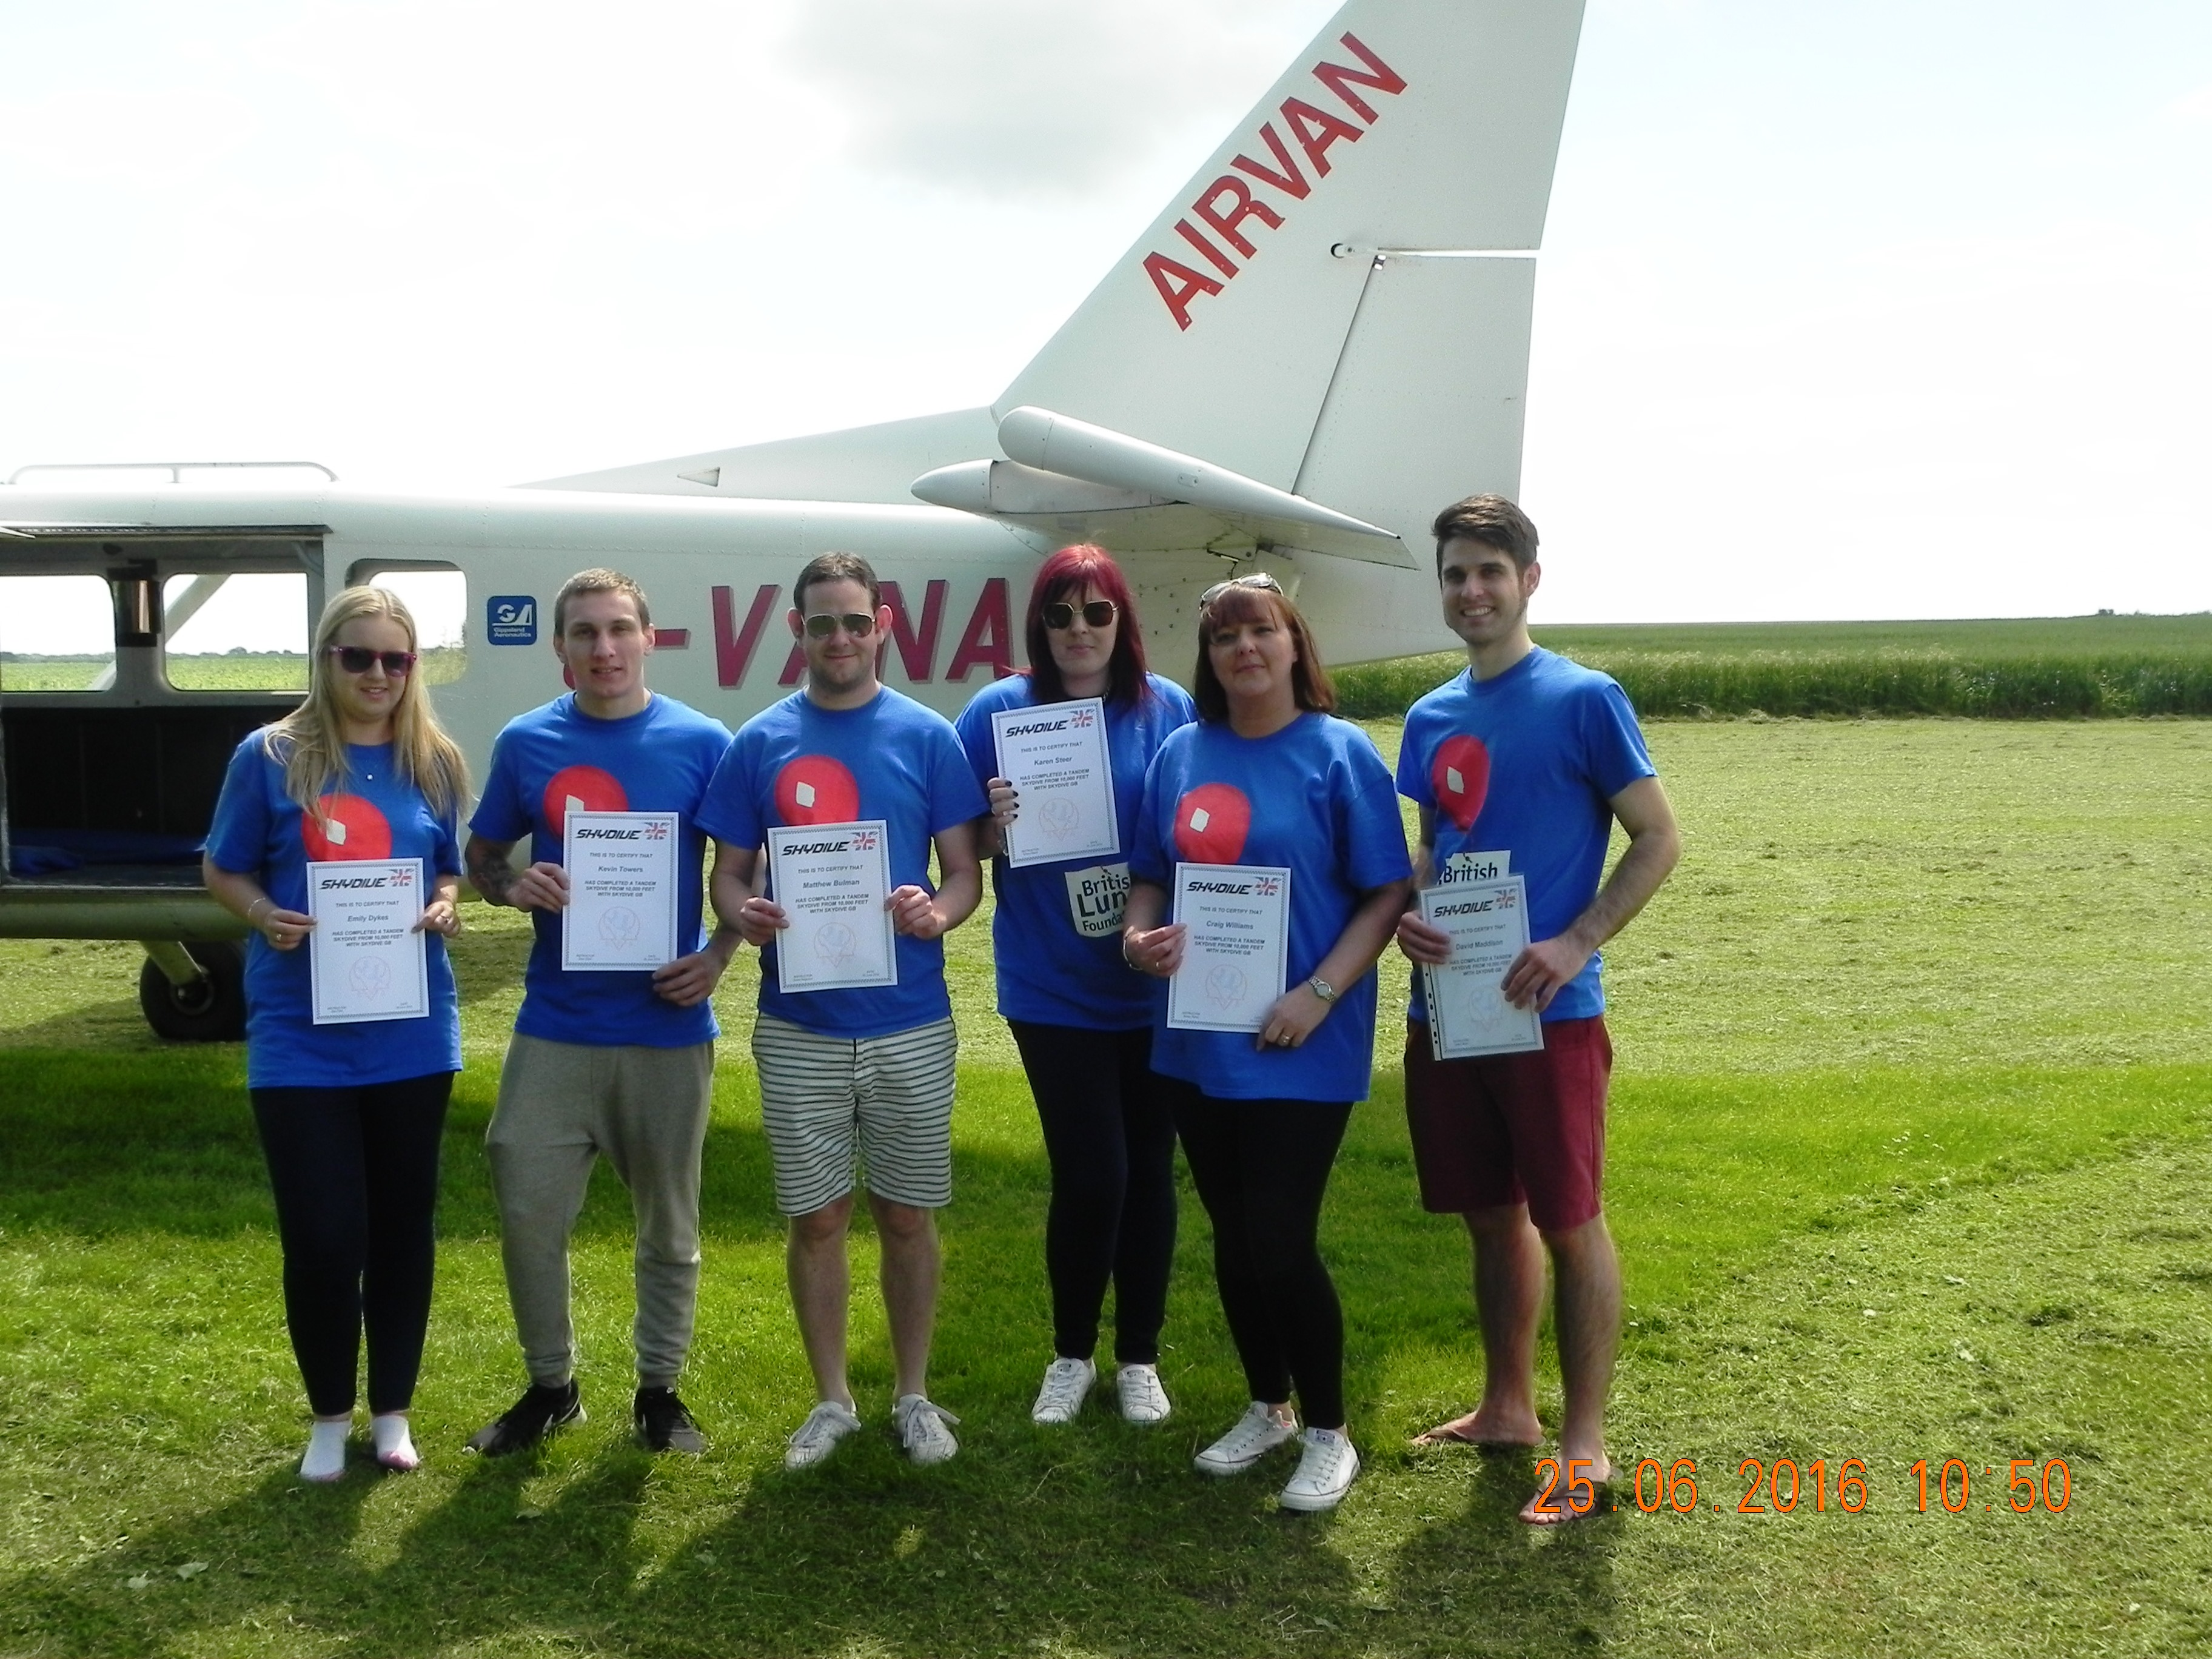 bradley environmental 25 year anniversary skydive justgiving